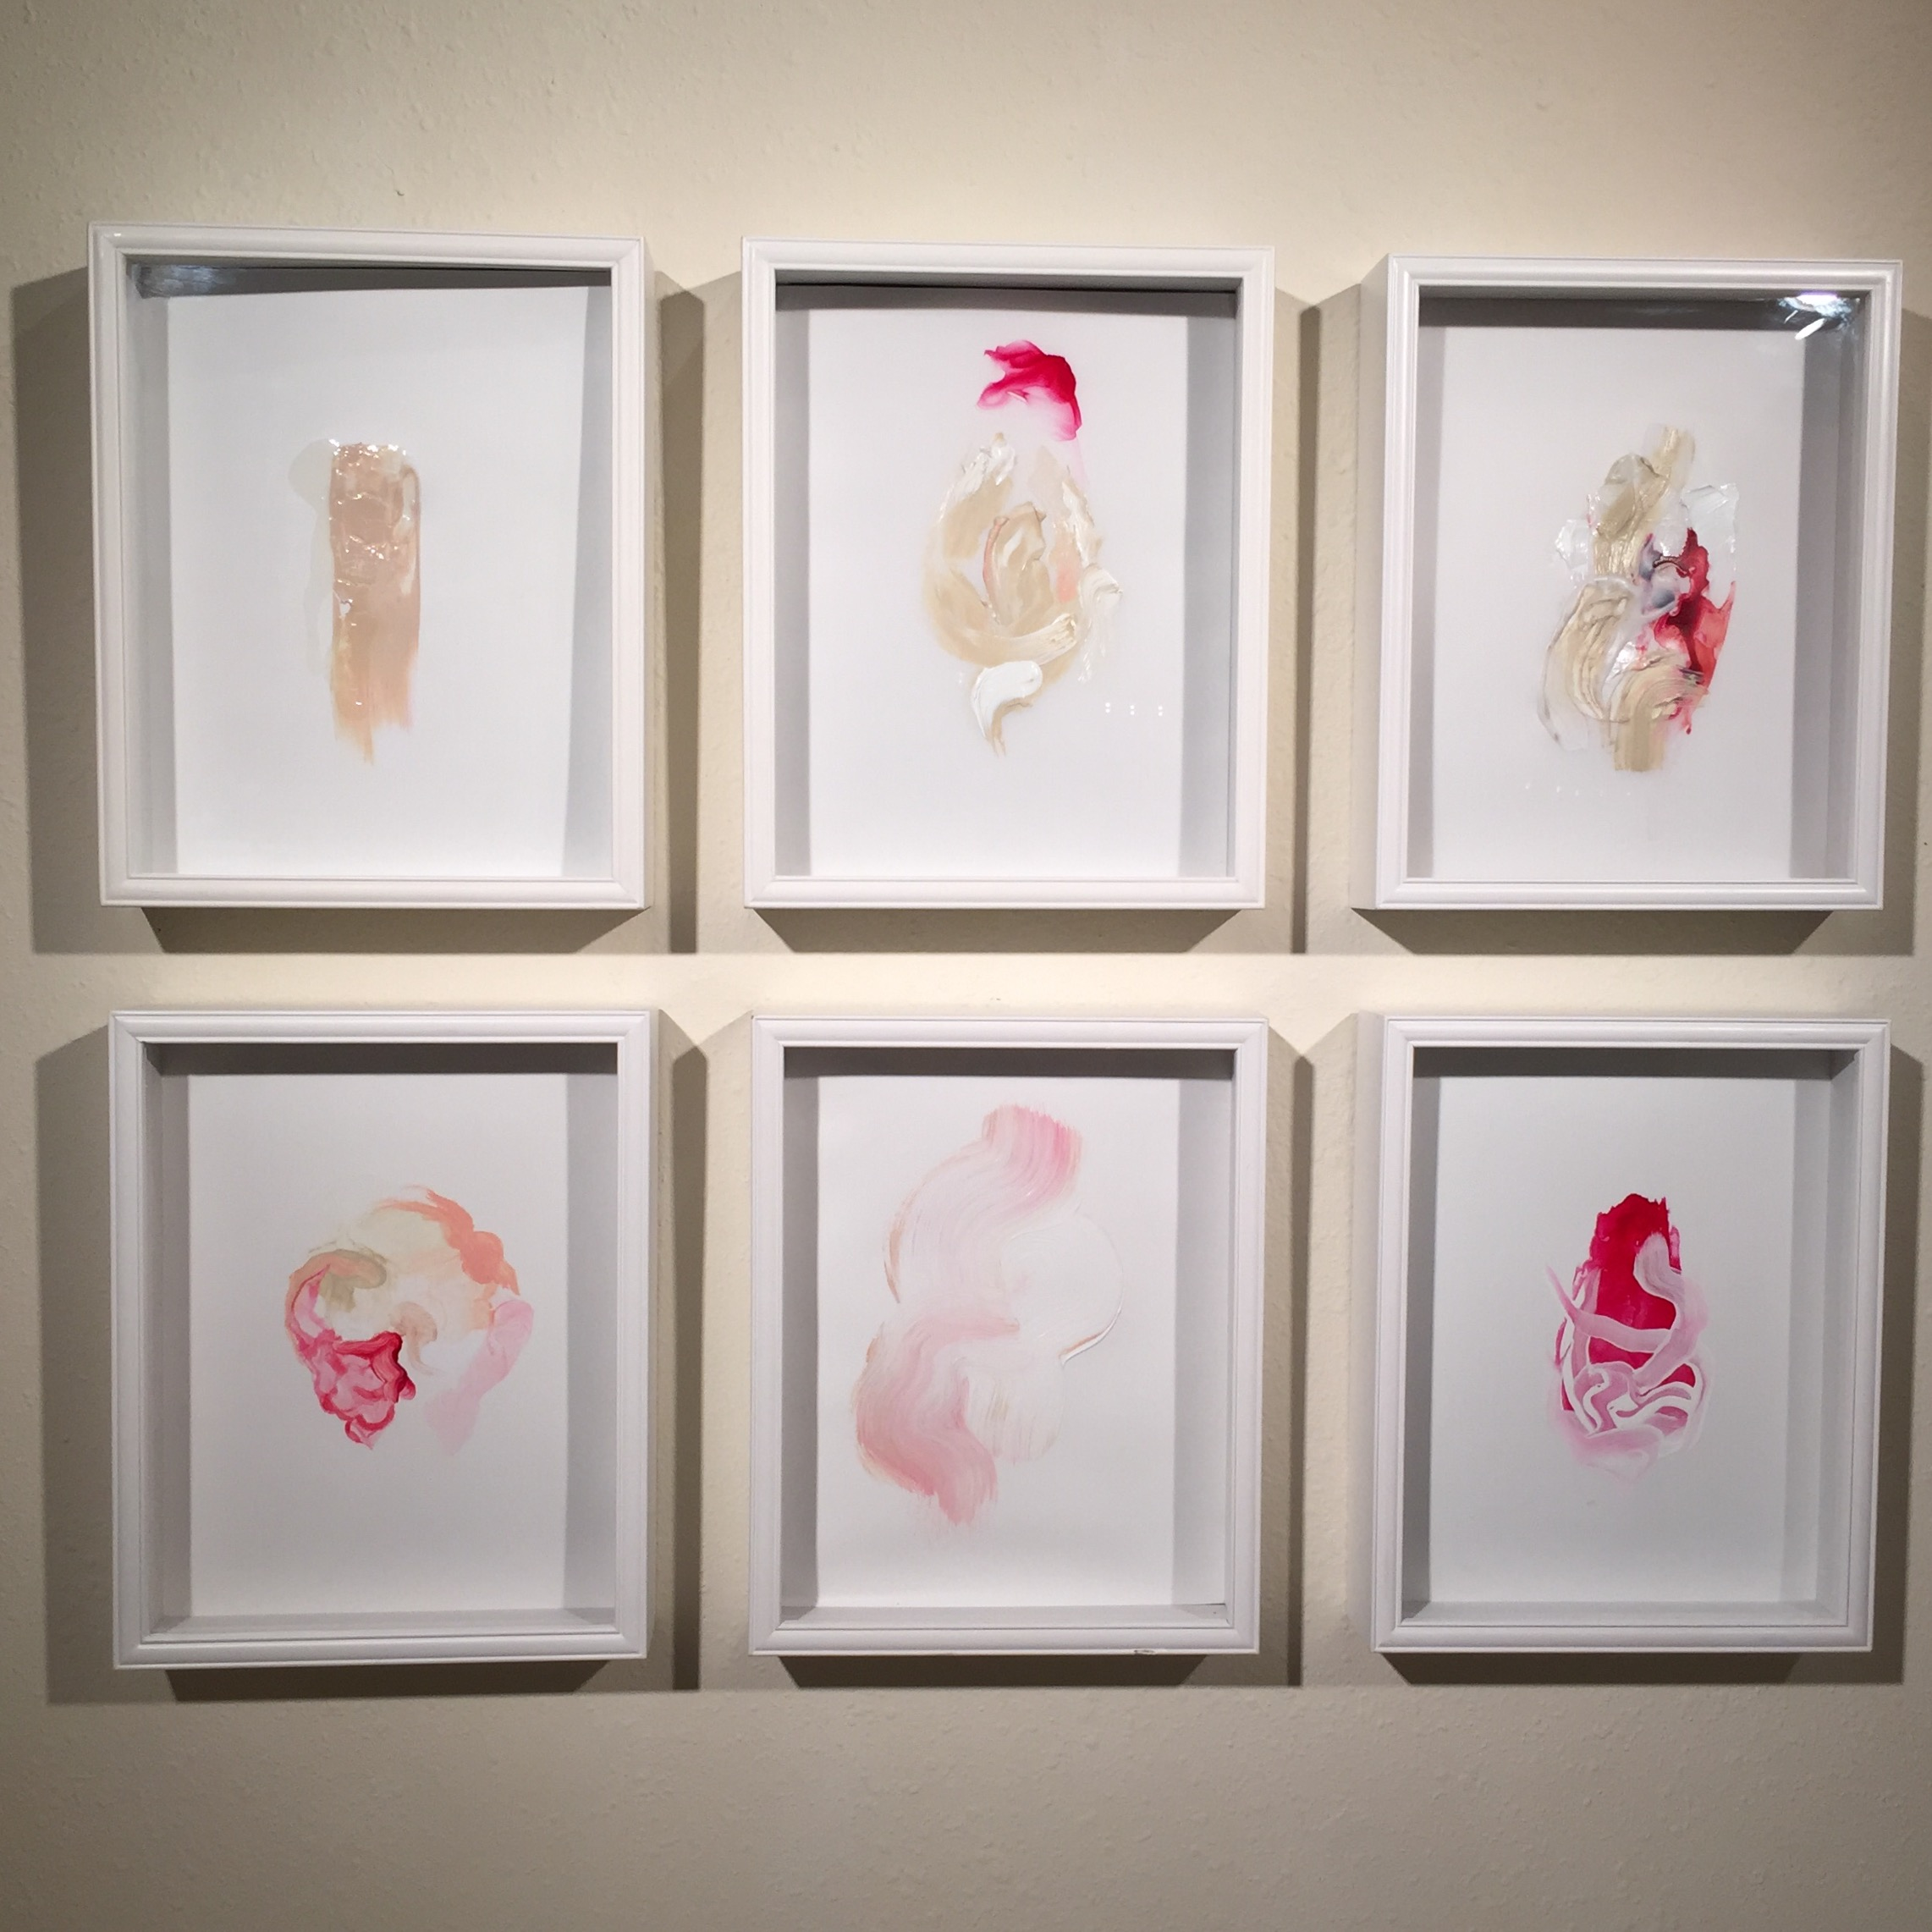 Blood and White  Series, 2014. From left to right, top to bottom:  White Window, Sacred Egg, Heart, Brain, Panic Cloud, White Specter.  BLUEOrange Gallery, Houston.